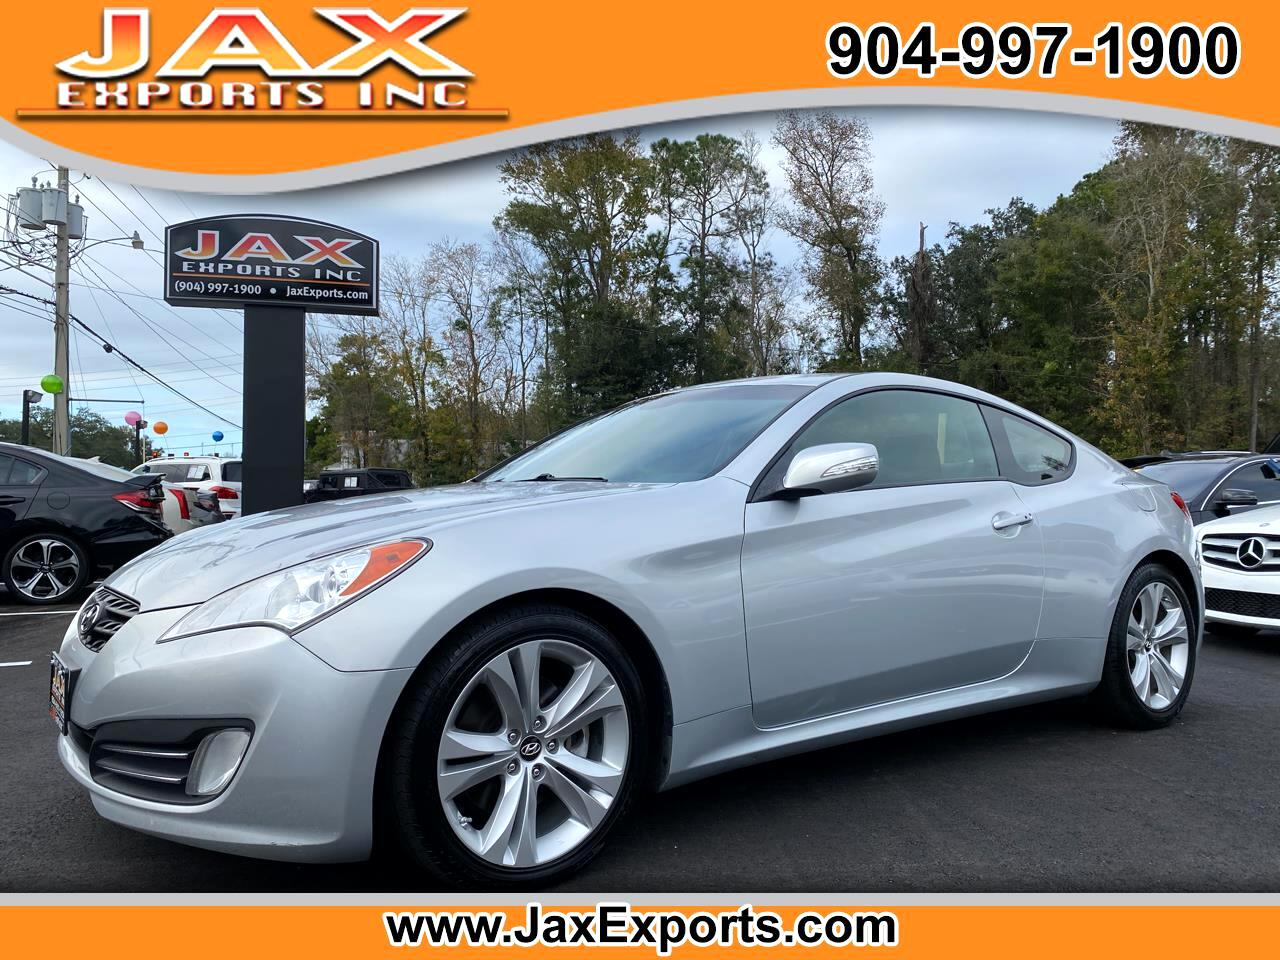 Hyundai Genesis Coupe 2dr 3.8L Auto Grand Touring w/Blk Lth 2011